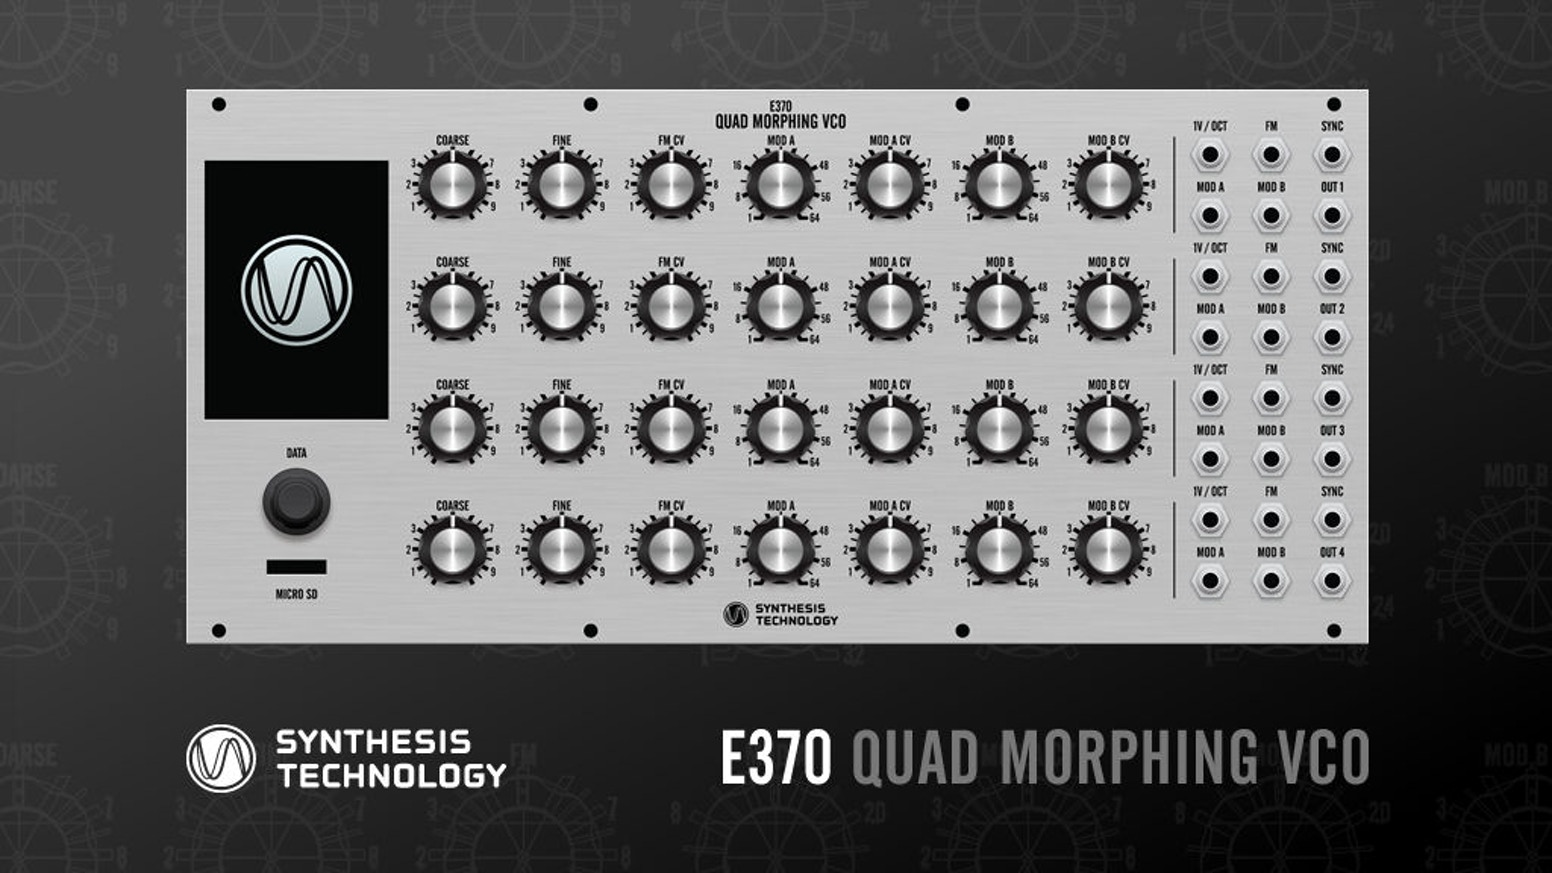 SynthTech E370 Quad Morphing VCO - Euro modular synth by